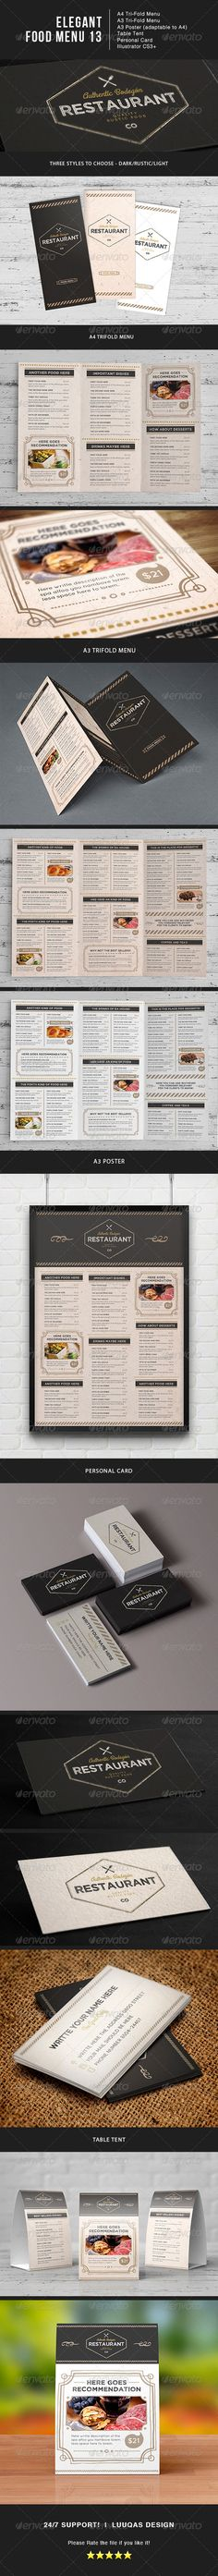 Bi Fold Food Menu - 3 Food menu, Kind of and Posters - sample cafe menu template